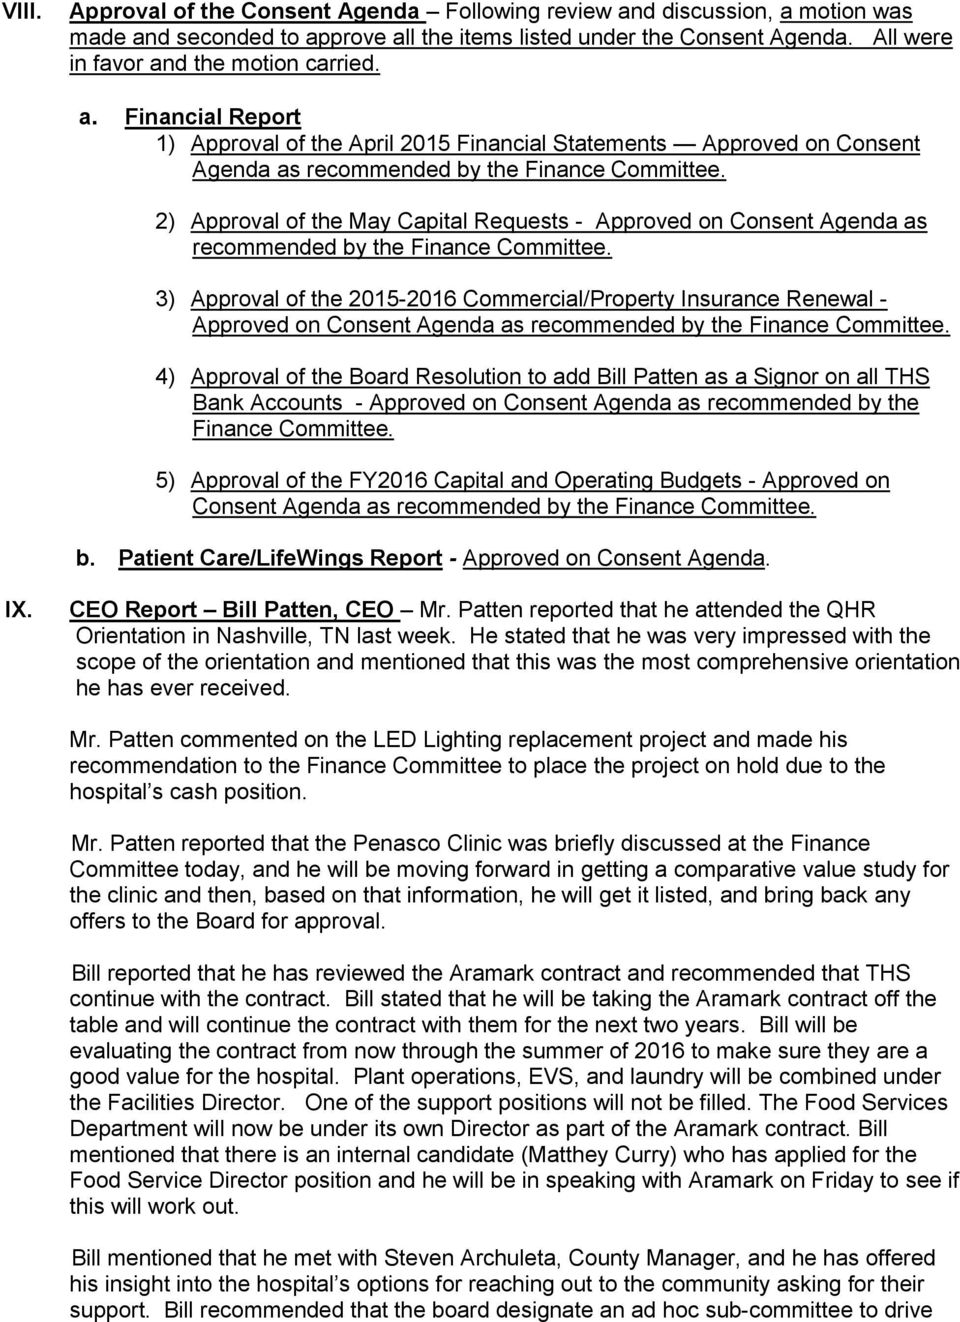 2) Approval of the May Capital Requests - Approved on Consent Agenda as recommended by the Finance Committee.